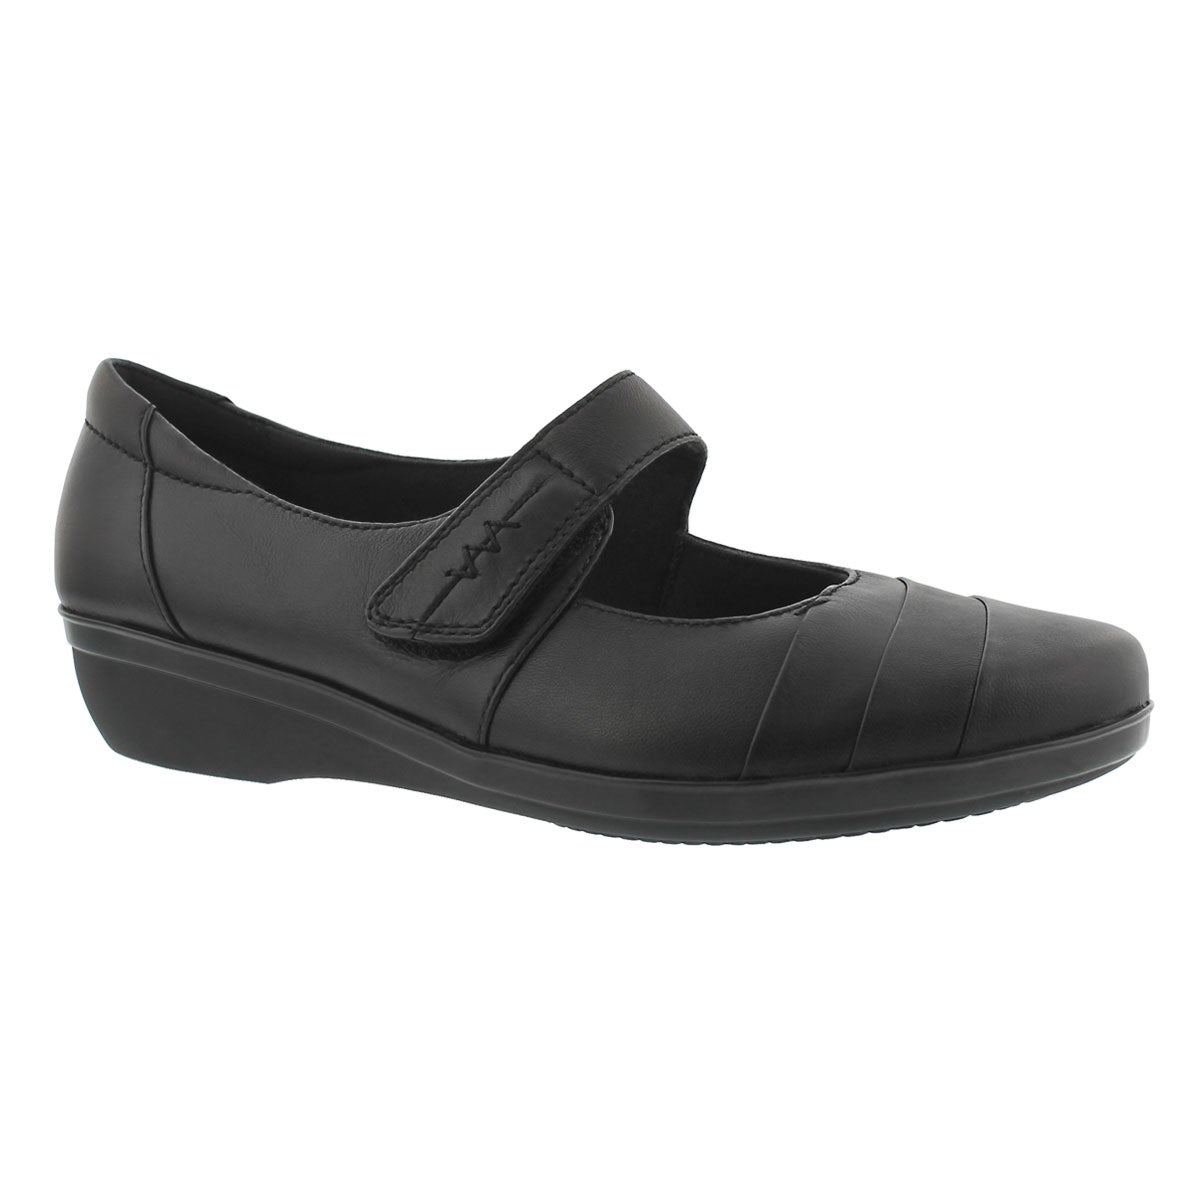 Women's EVERLAY KENNON black Mary Janes - Wide